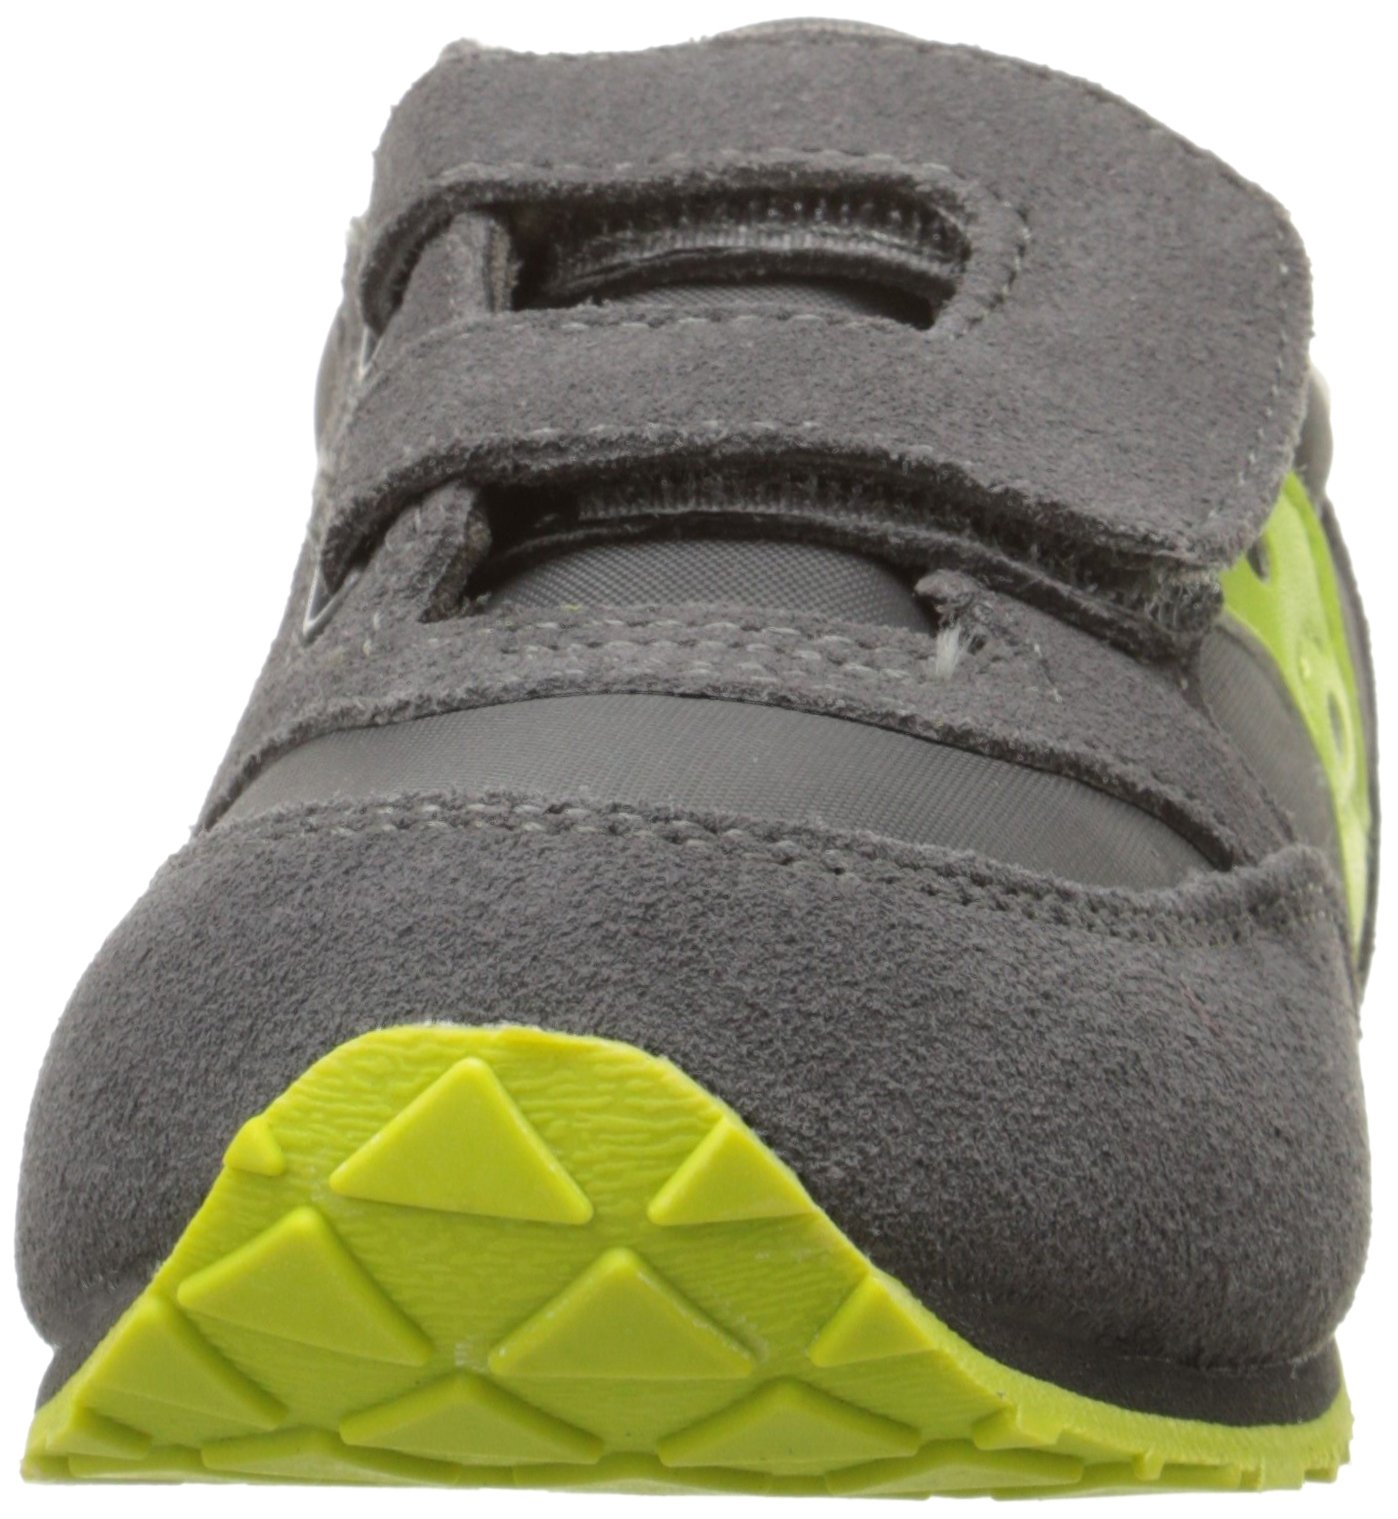 Saucony Jazz Hook & Loop Sneaker (Toddler/Little Kid), Grey/Citron, 9 M US Toddler by Saucony (Image #4)